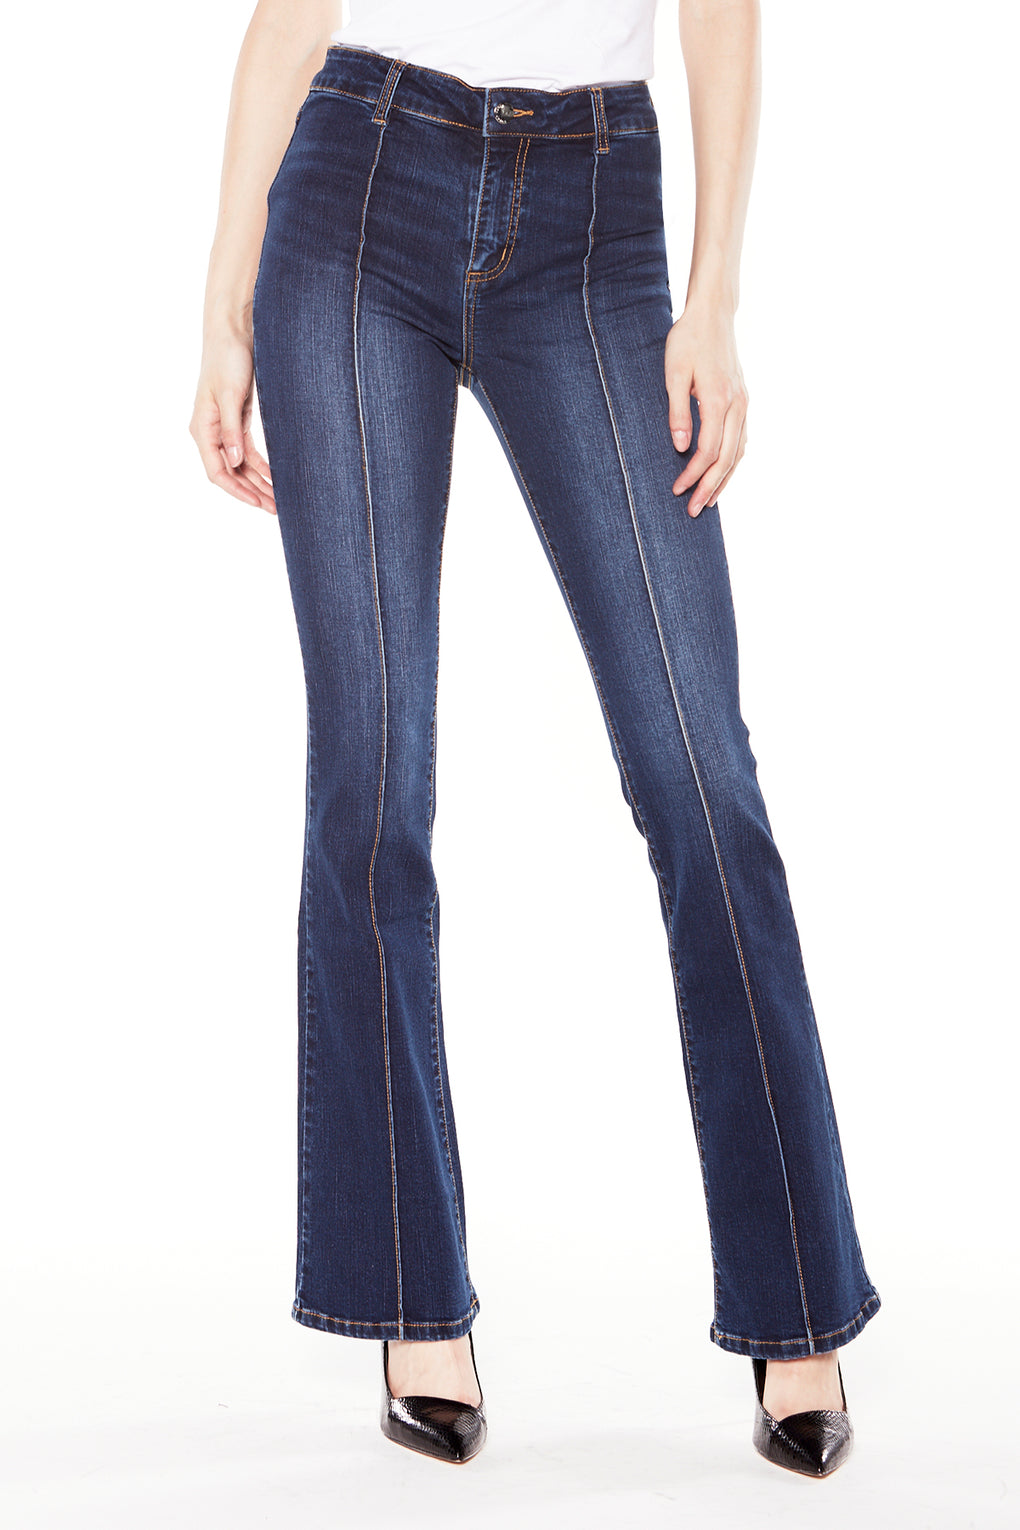 STEVIE - Hight Rise Flare Leg Jean (FX-STEVIE-SKY)